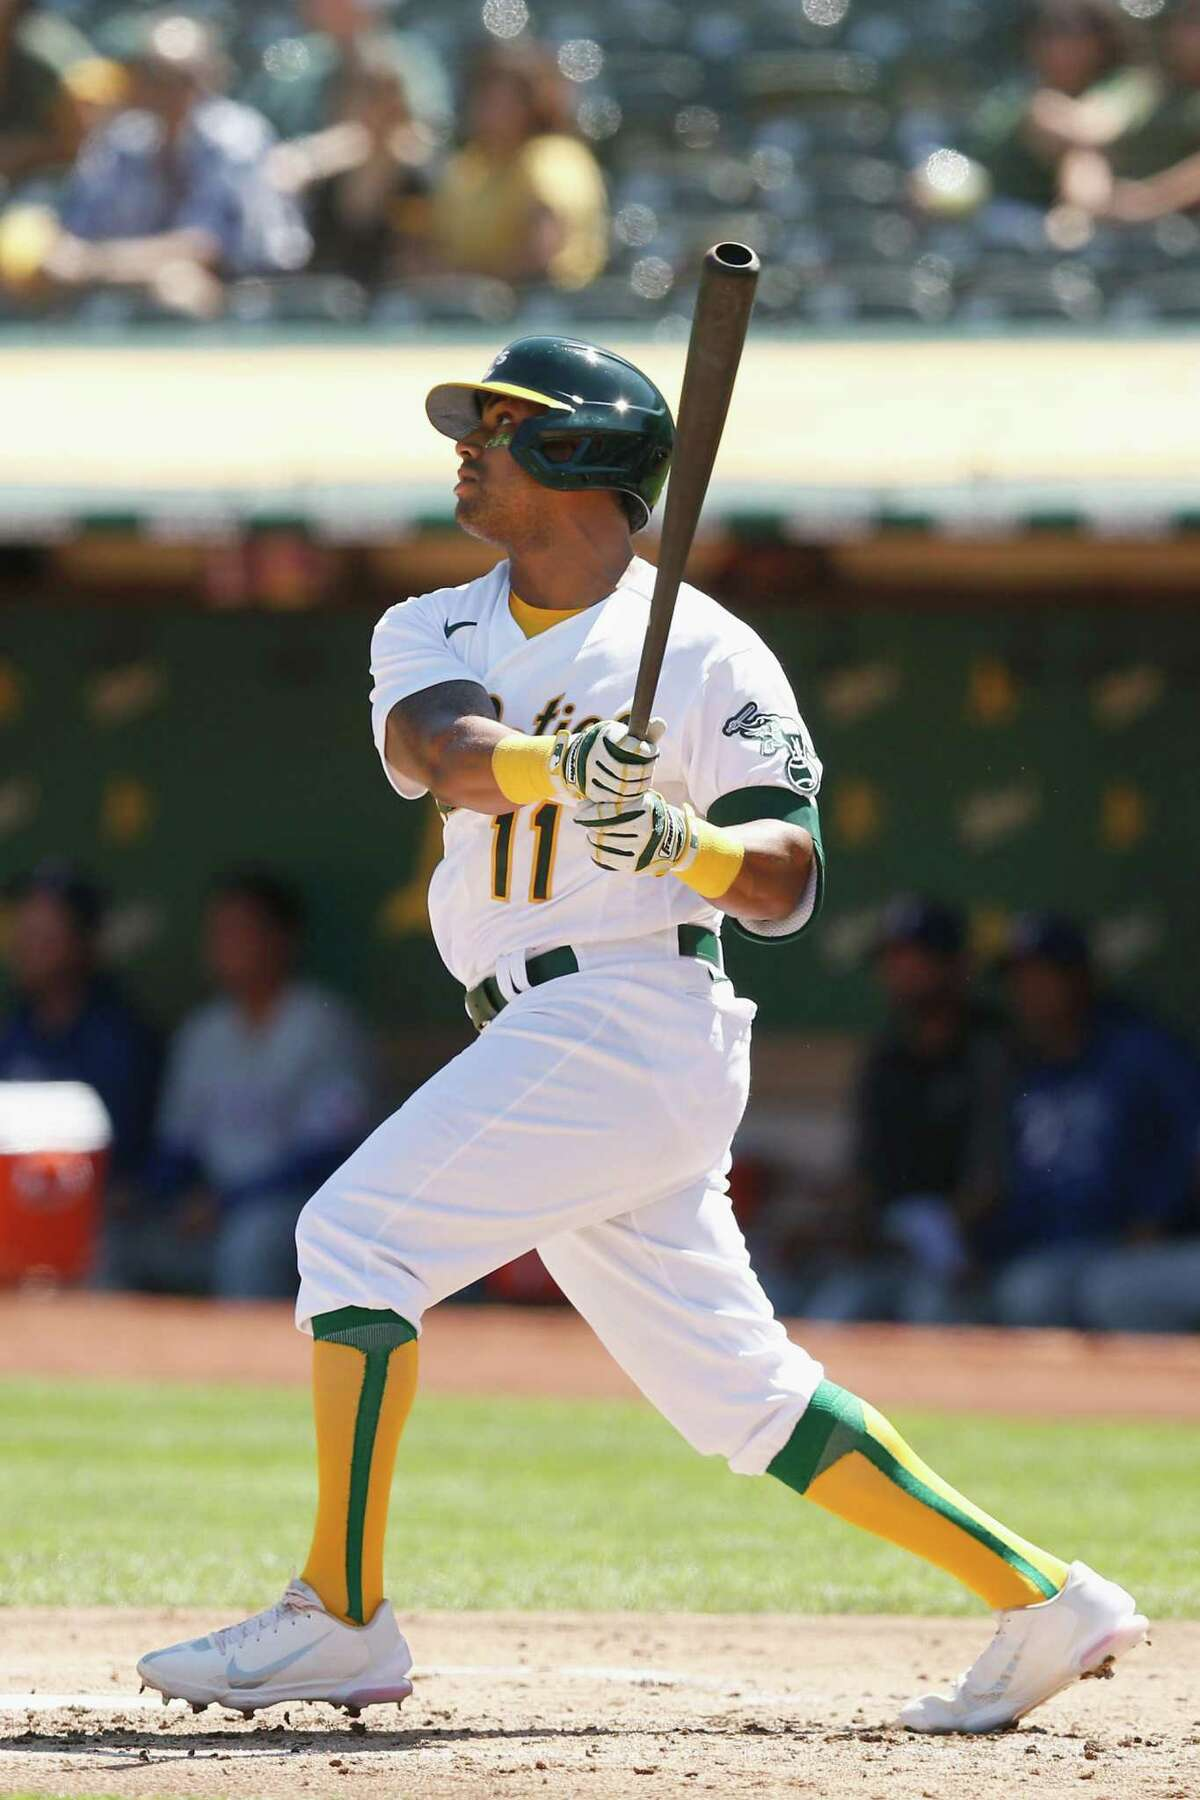 OAKLAND, CALIFORNIA - SEPTEMBER 11: Khris Davis #11 of the Oakland Athletics hits a double in the bottom of the second inning against the Texas Rangers at RingCentral Coliseum on September 11, 2021 in Oakland, California. (Photo by Lachlan Cunningham/Getty Images)